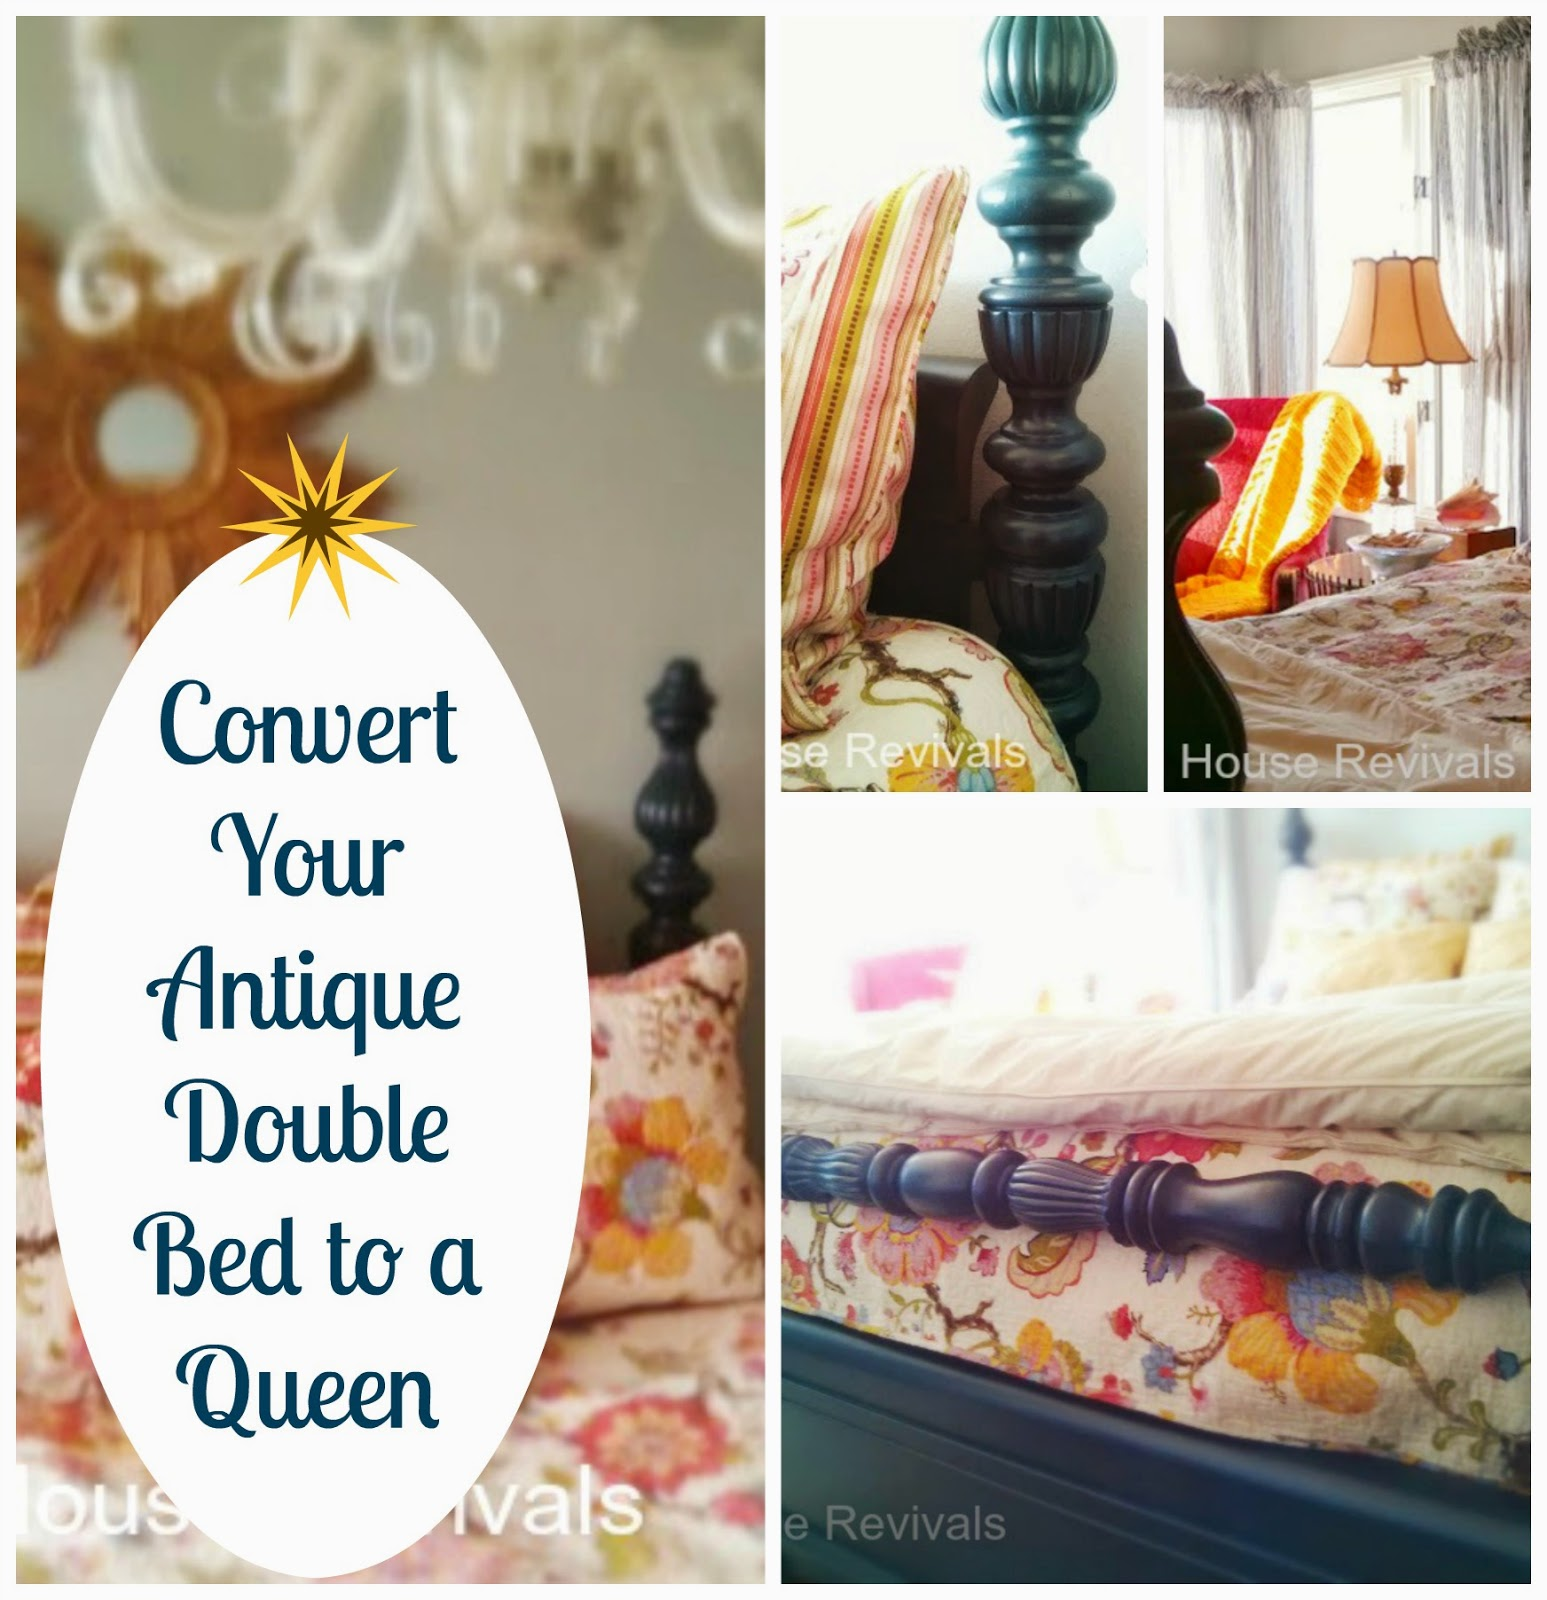 House Revivals How To Convert Your Antique Double Bed To A Queen Bed